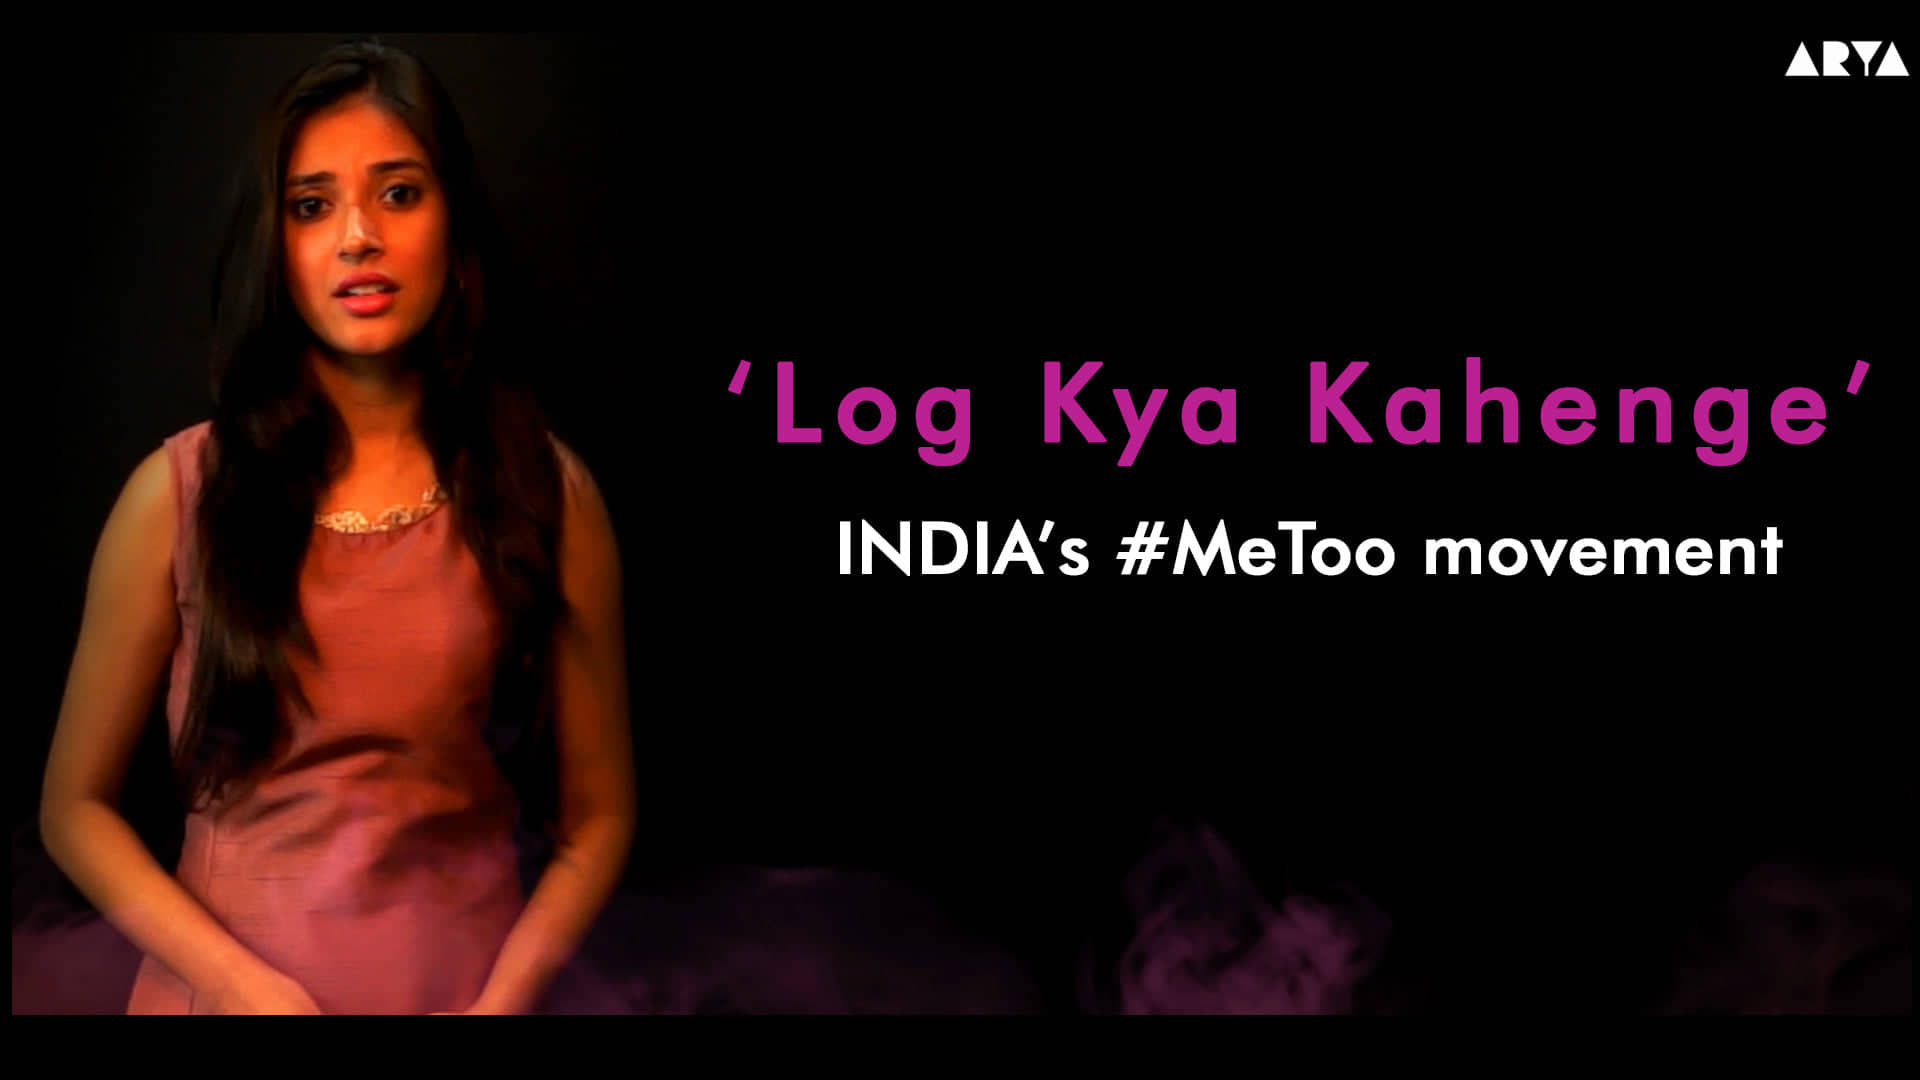 India, #MeToo Movement, Log Kya Kahenge, Shipra Rastogi, Rahul Arya, Sandart